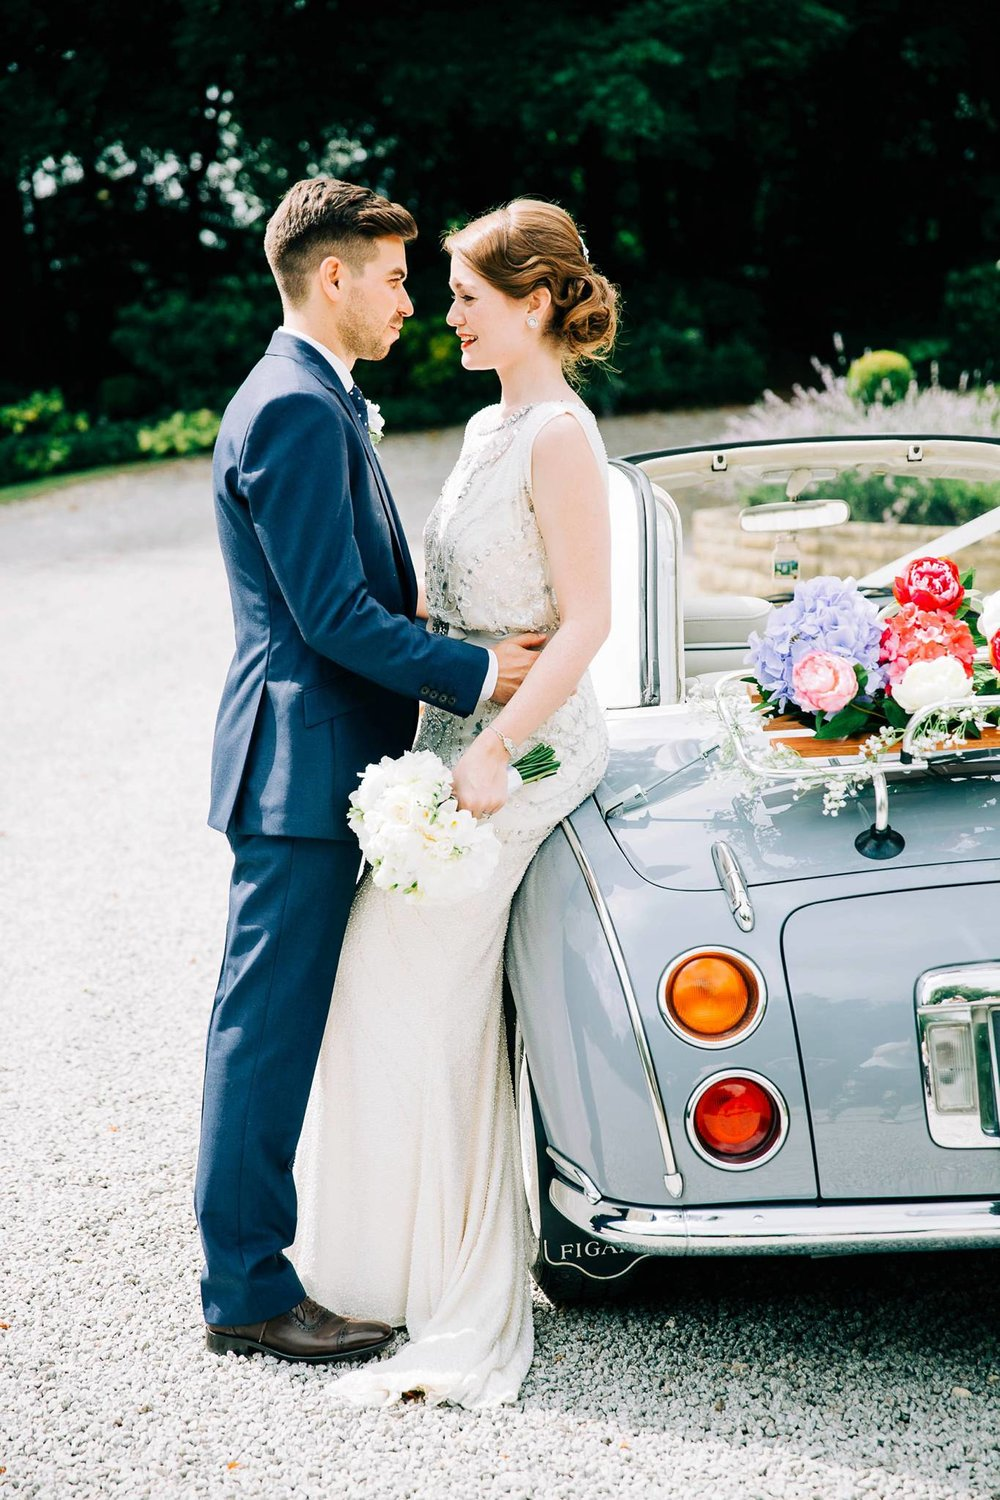 Natural wedding photography Manchester - Clare Robinson Photography_0044.jpg